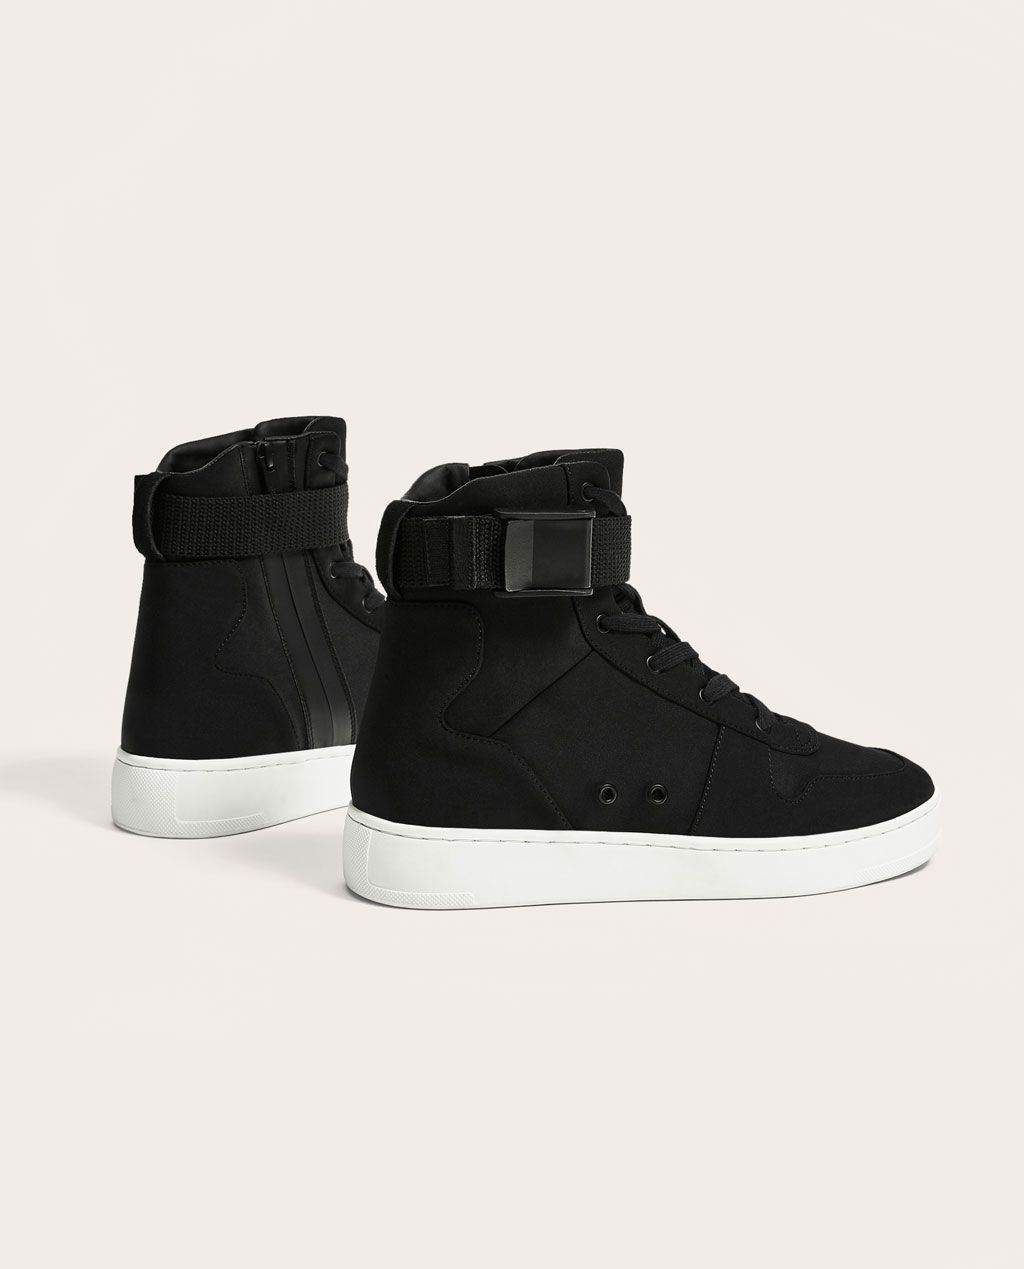 factory authentic daf67 cfd78 ZARA - MAN - BLACK HIGH TOP SNEAKERS